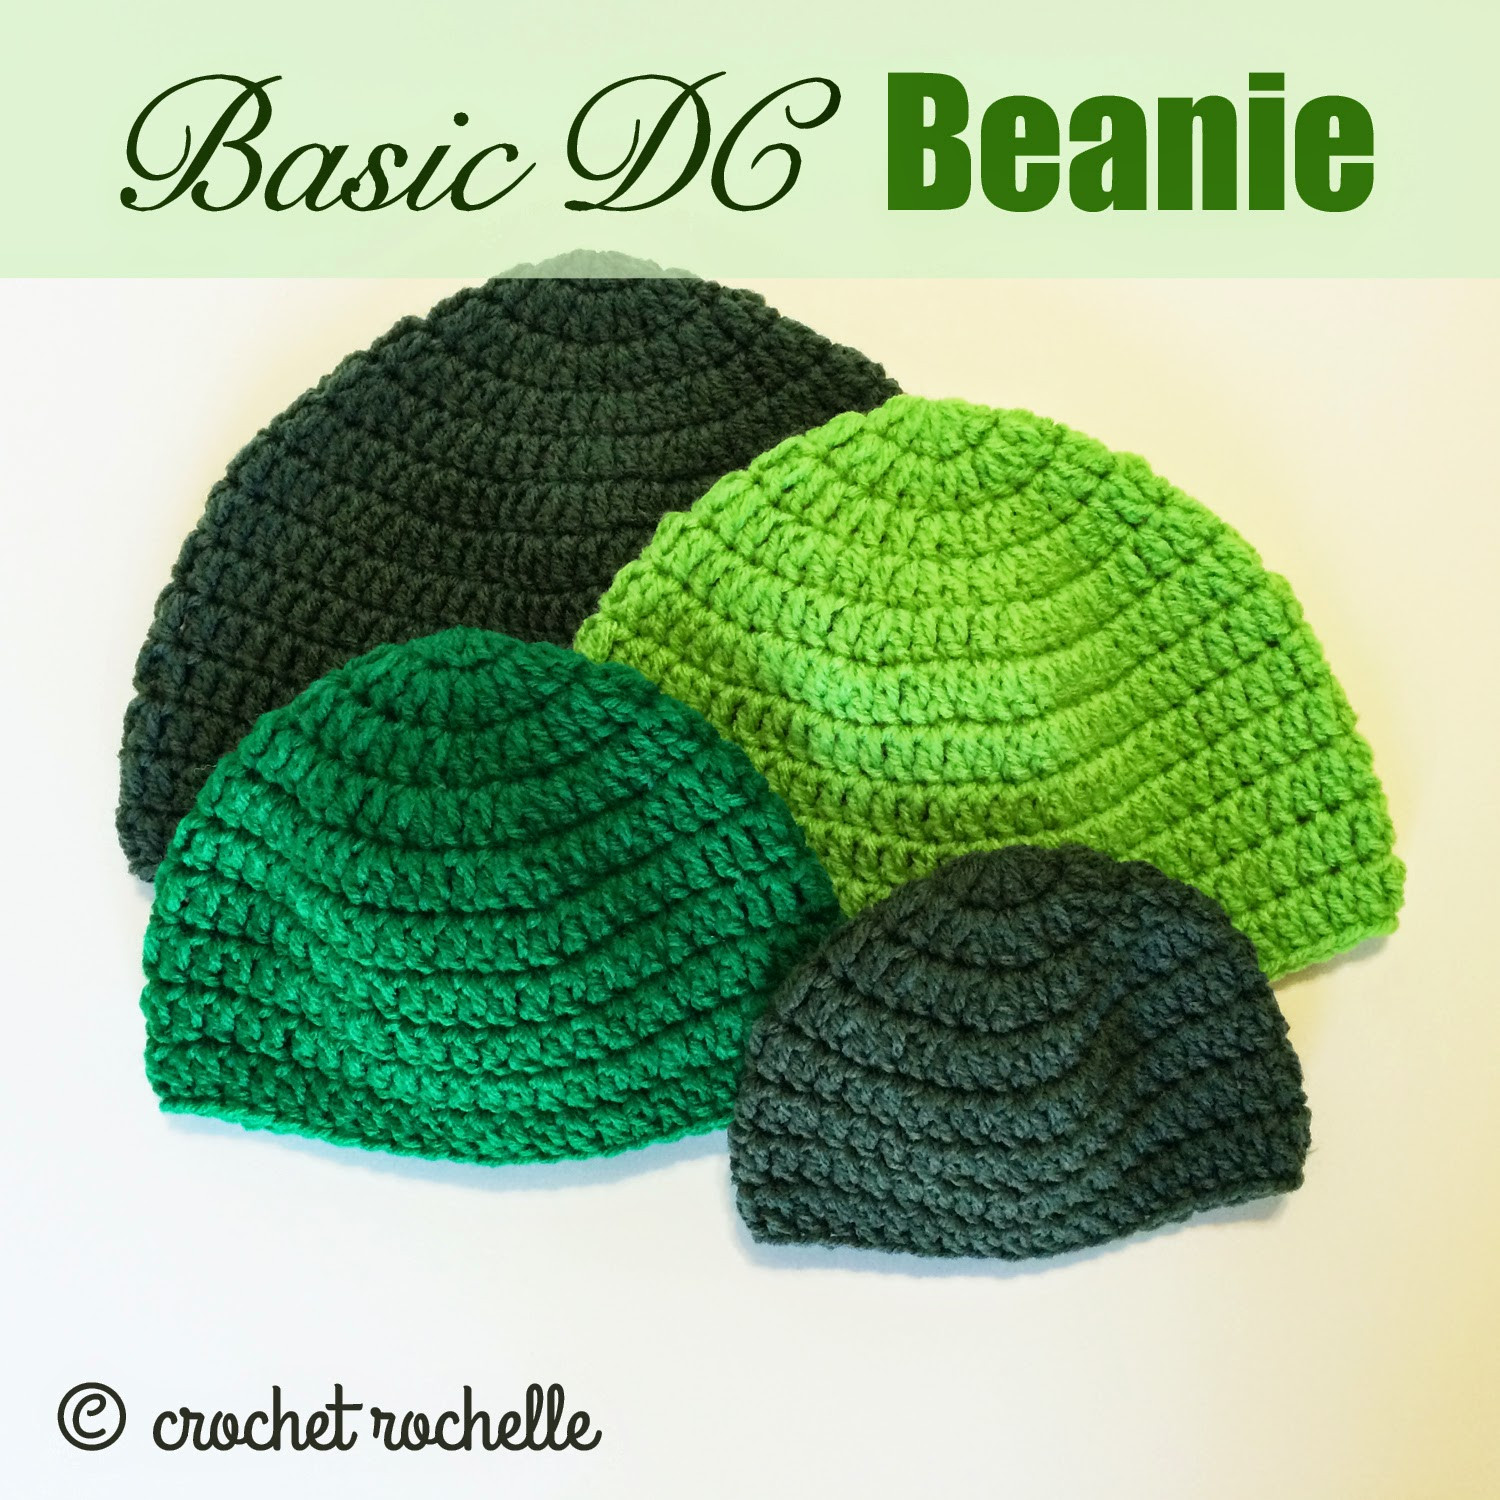 Fresh Crochet Rochelle Basic Dc Beanie Pattern Simple Beanie Crochet Pattern Of Innovative 50 Ideas Simple Beanie Crochet Pattern